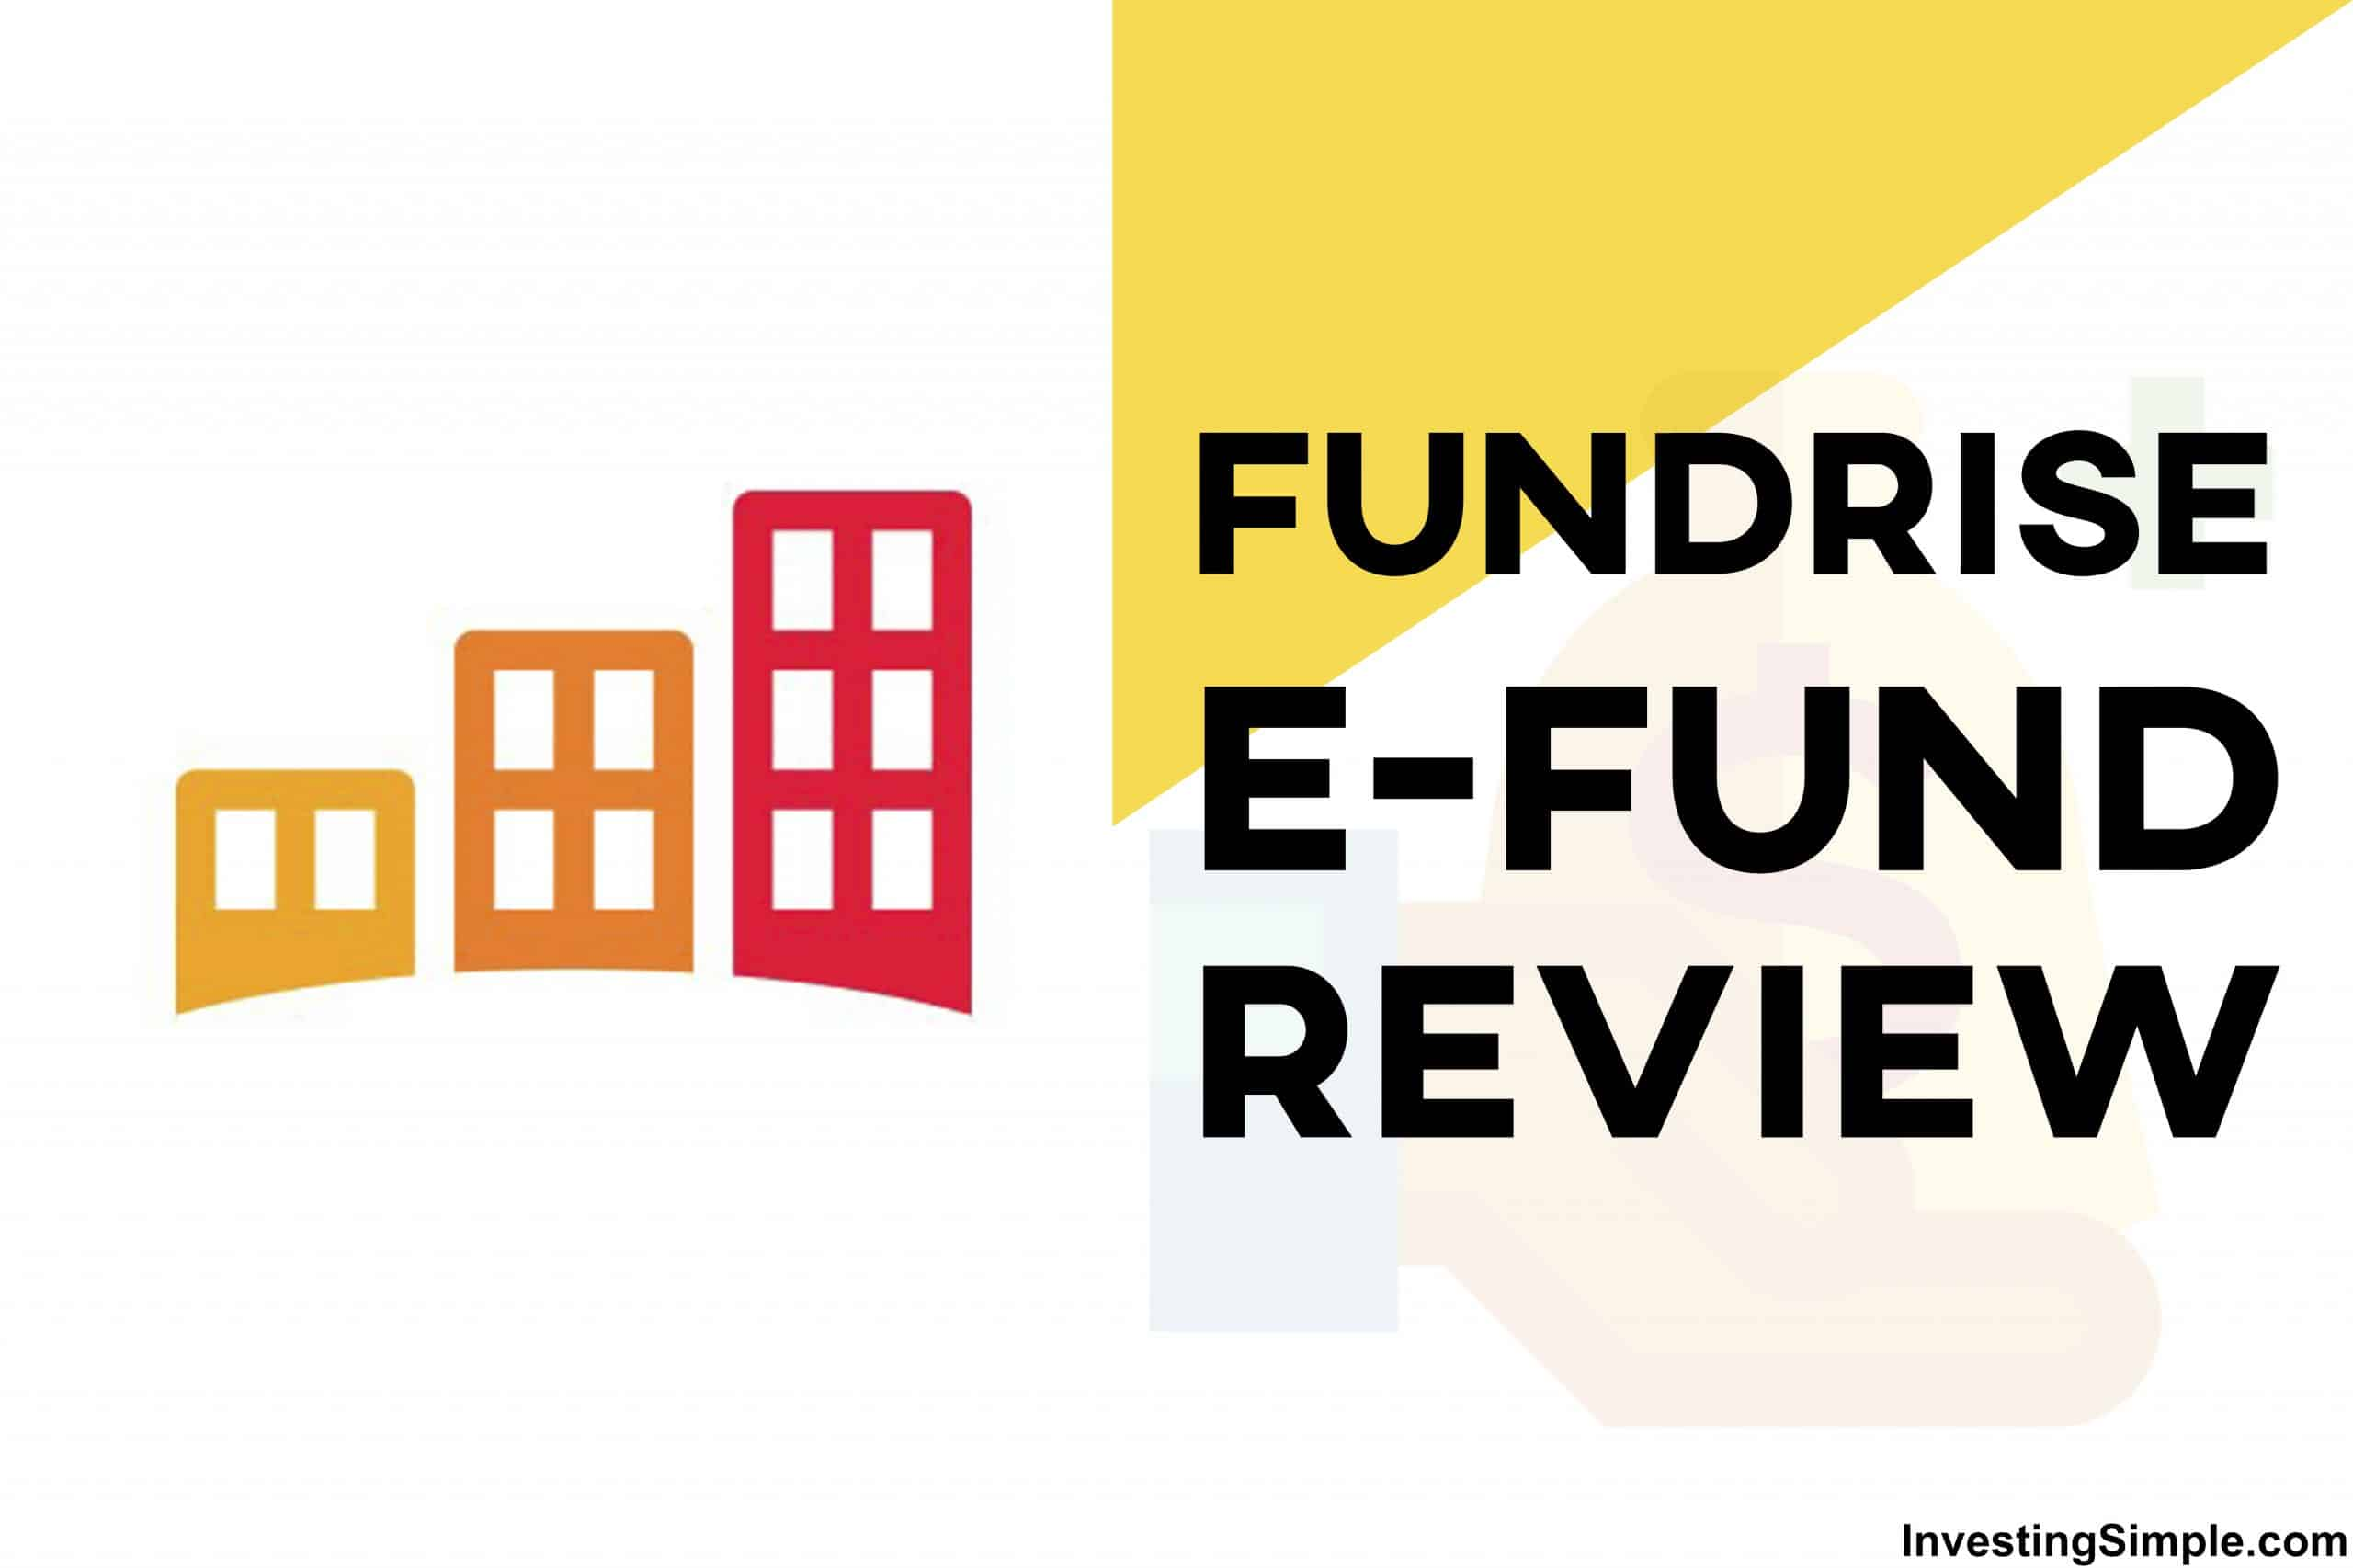 Fundrise efund review